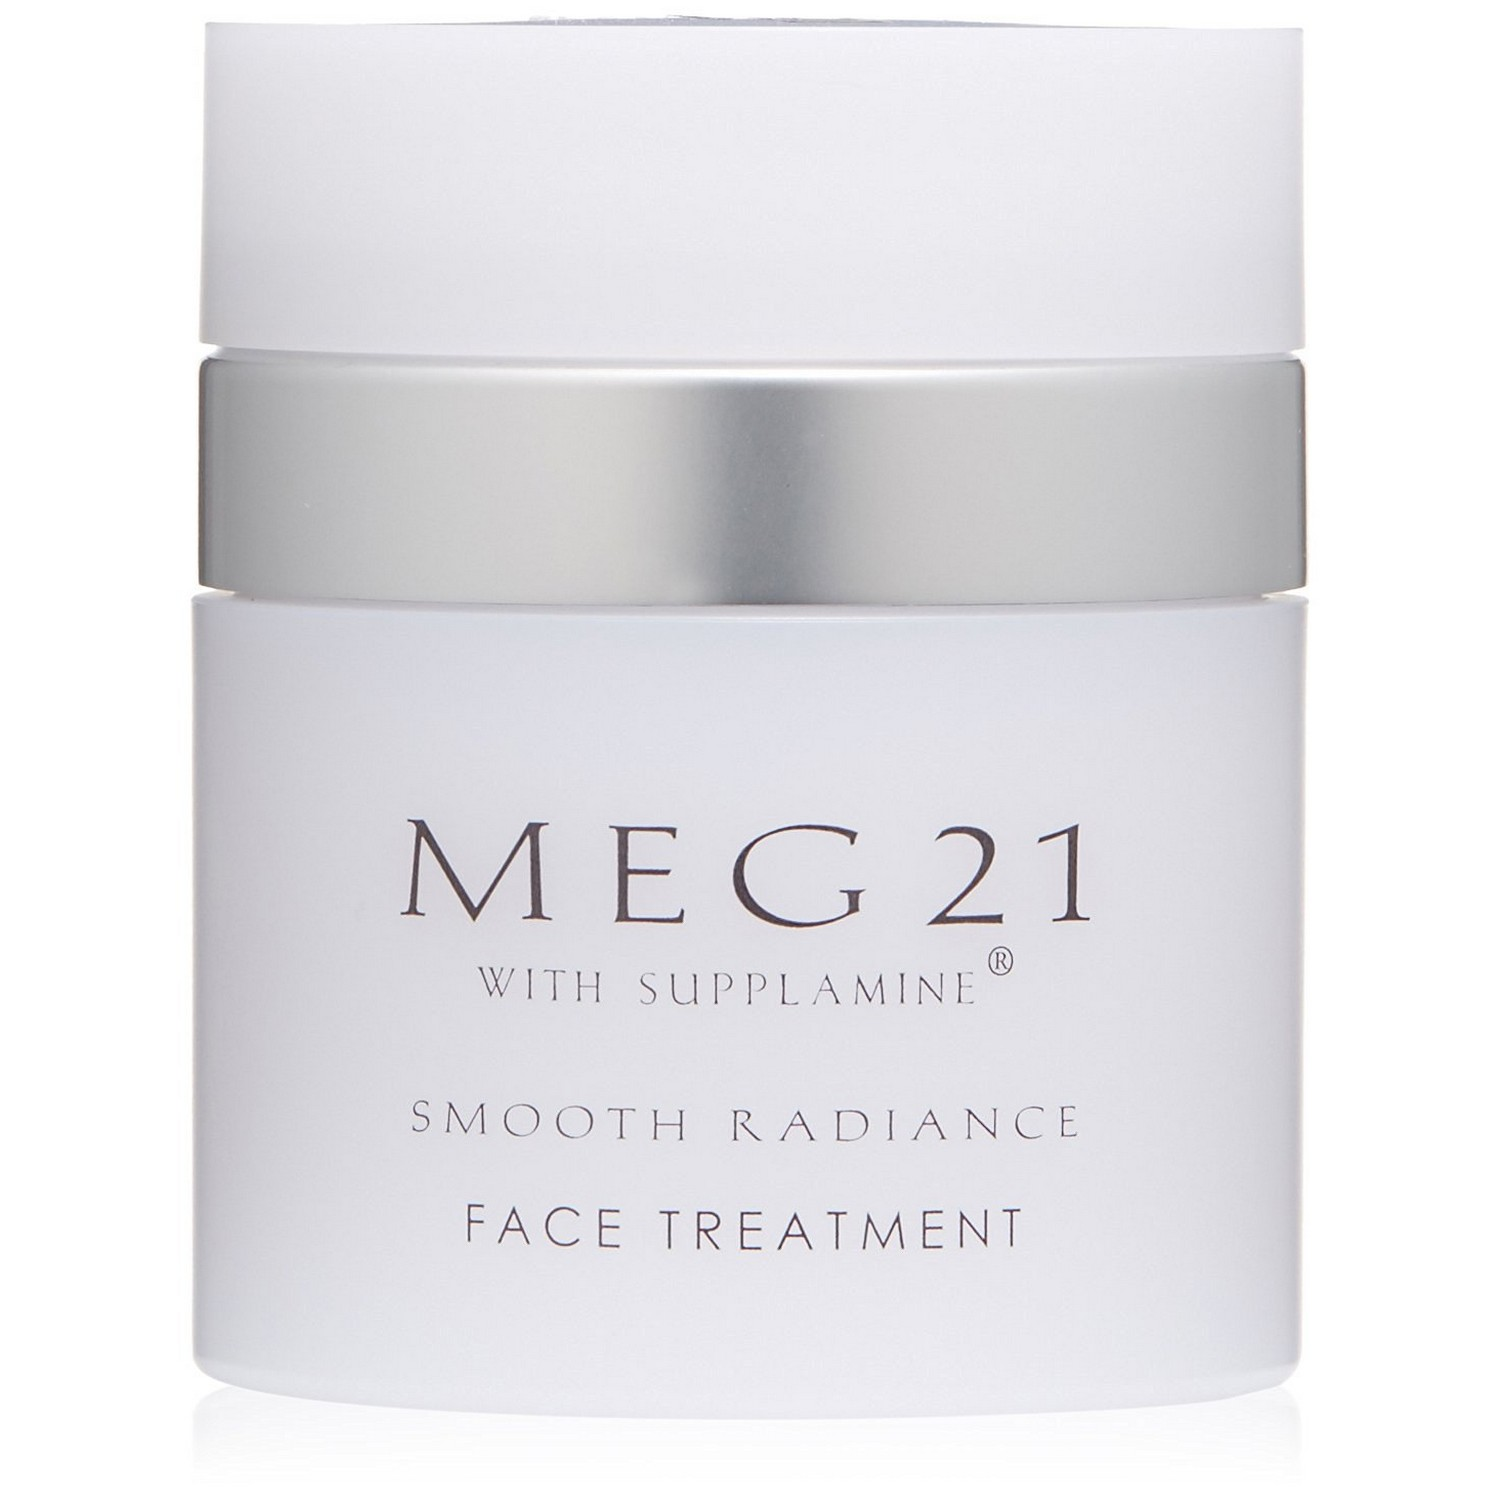 Buy MEG 21 SMOOTH RADIANCE FACE TREATMENT (1.7 oz / 50 g)